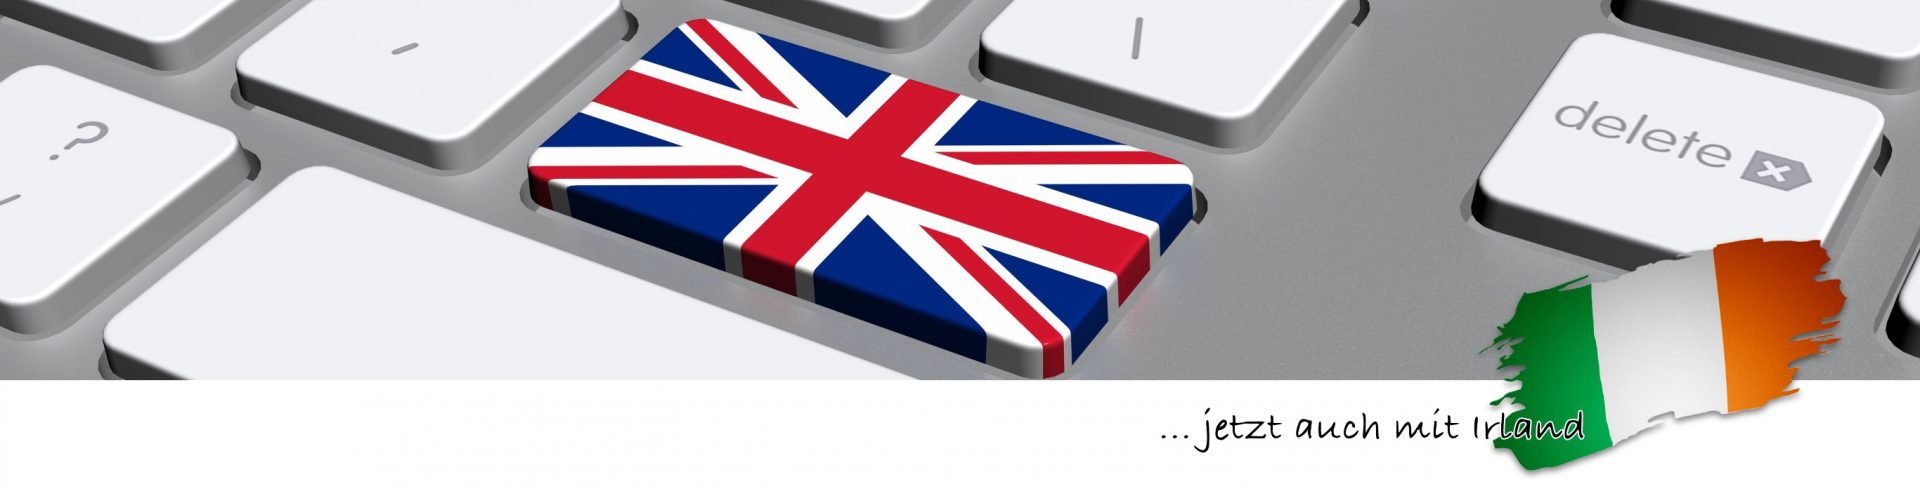 enjoyUK.net - it's all about Britain